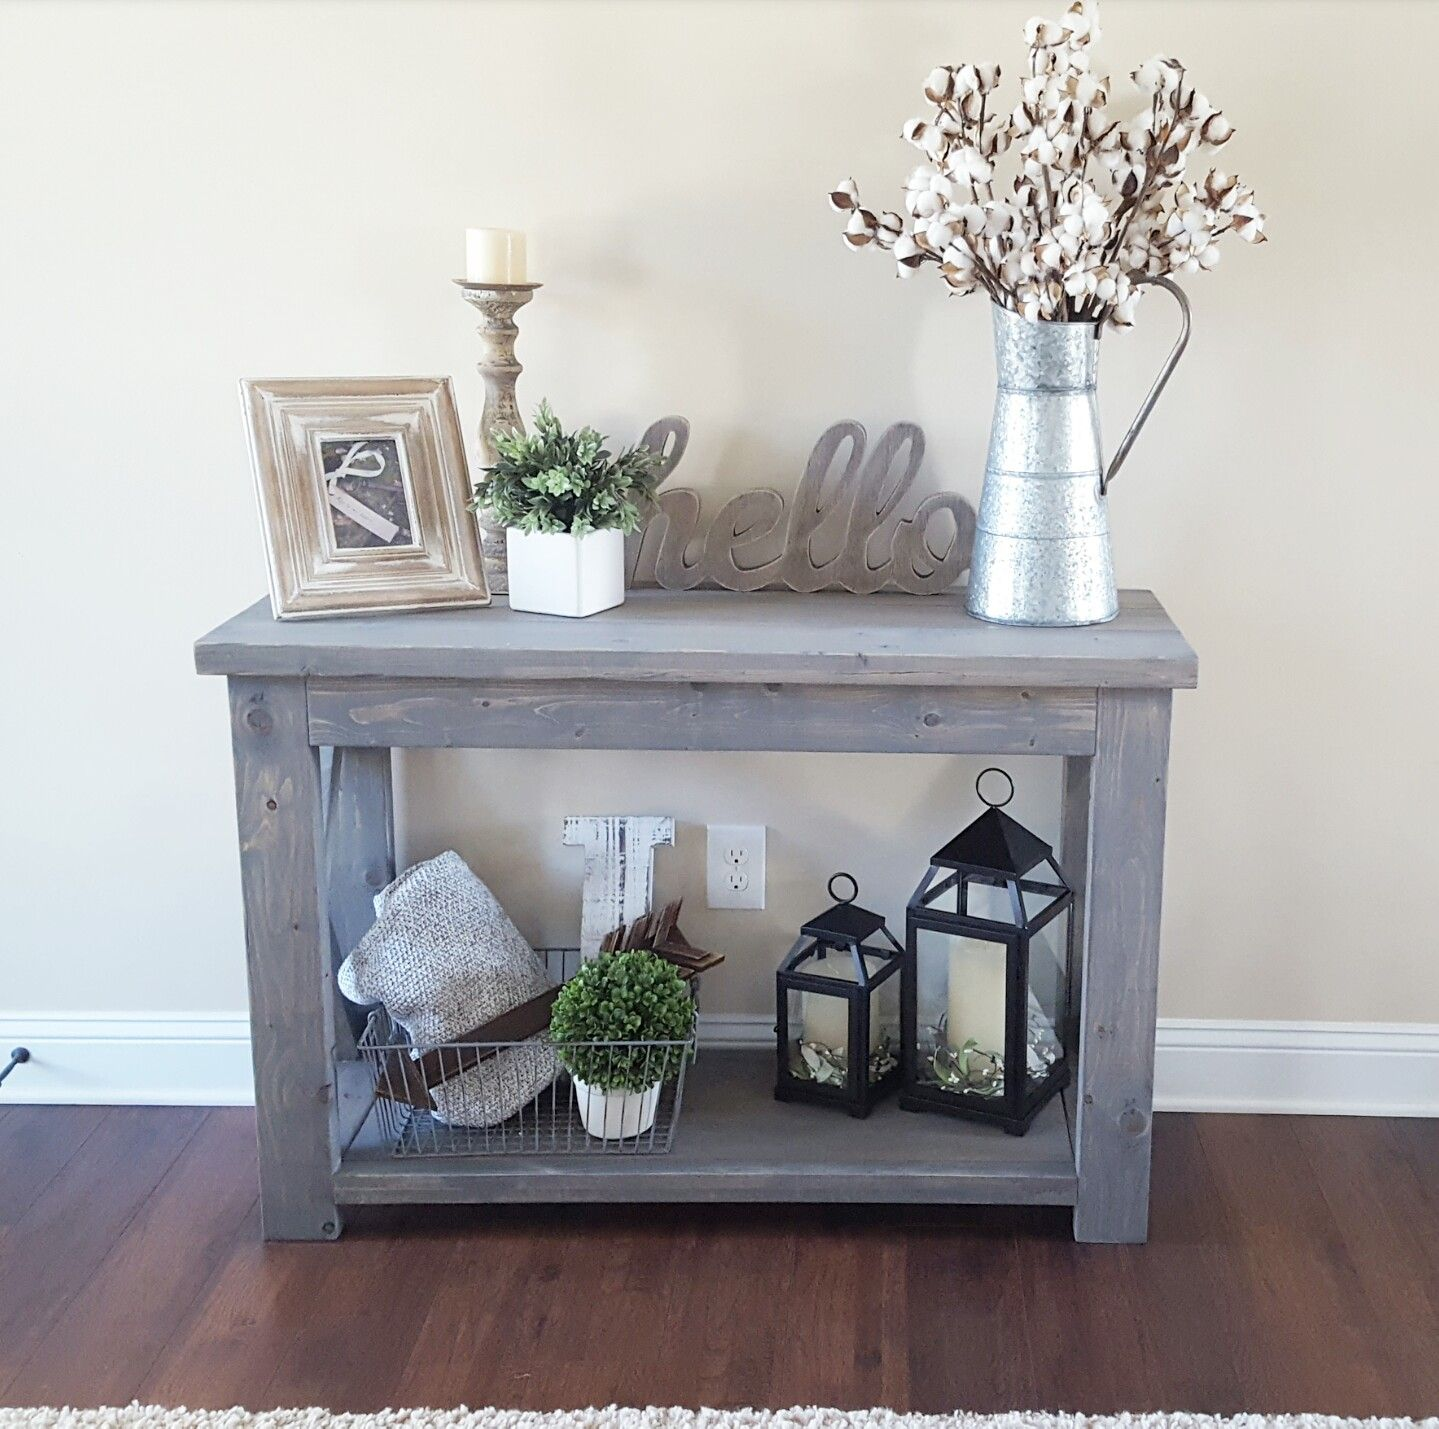 Modified ana whiteus rustic x console table and used minwax classic